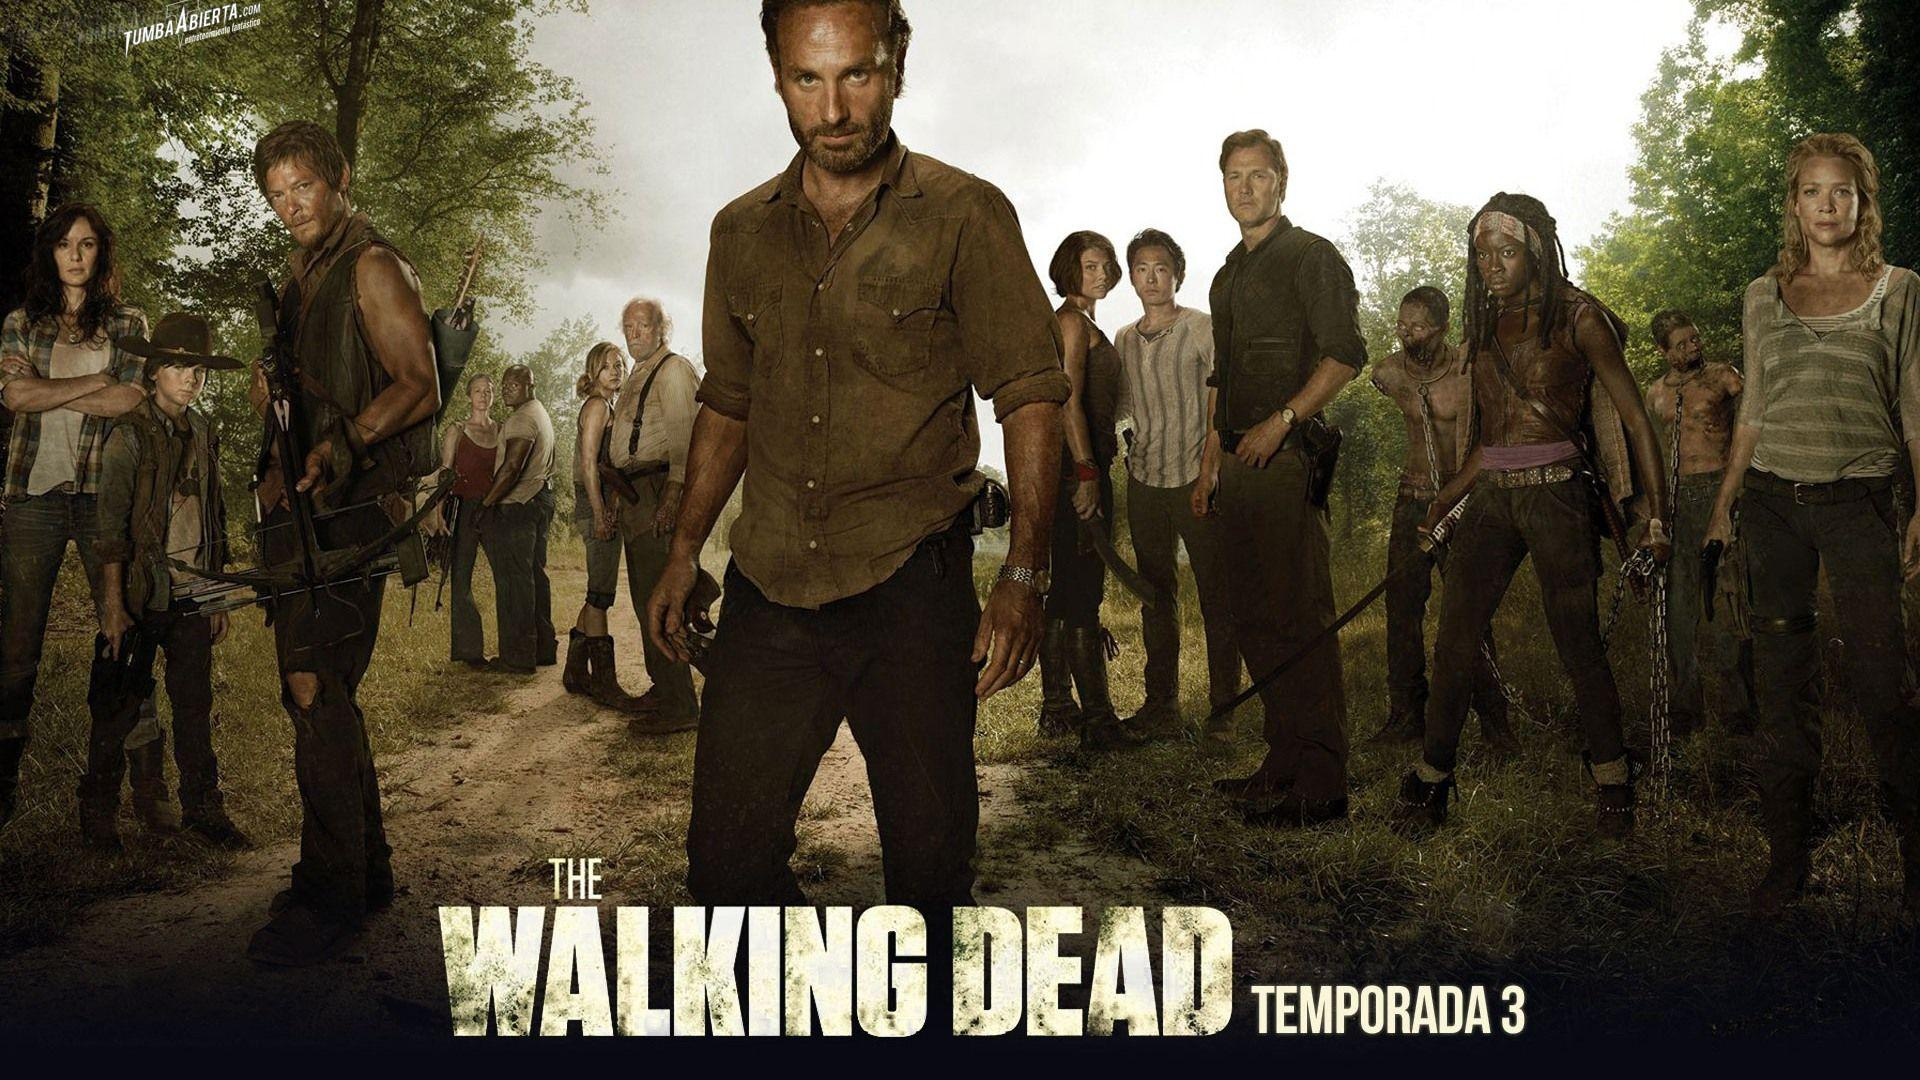 Walking Dead Wallpaper 1920x1080